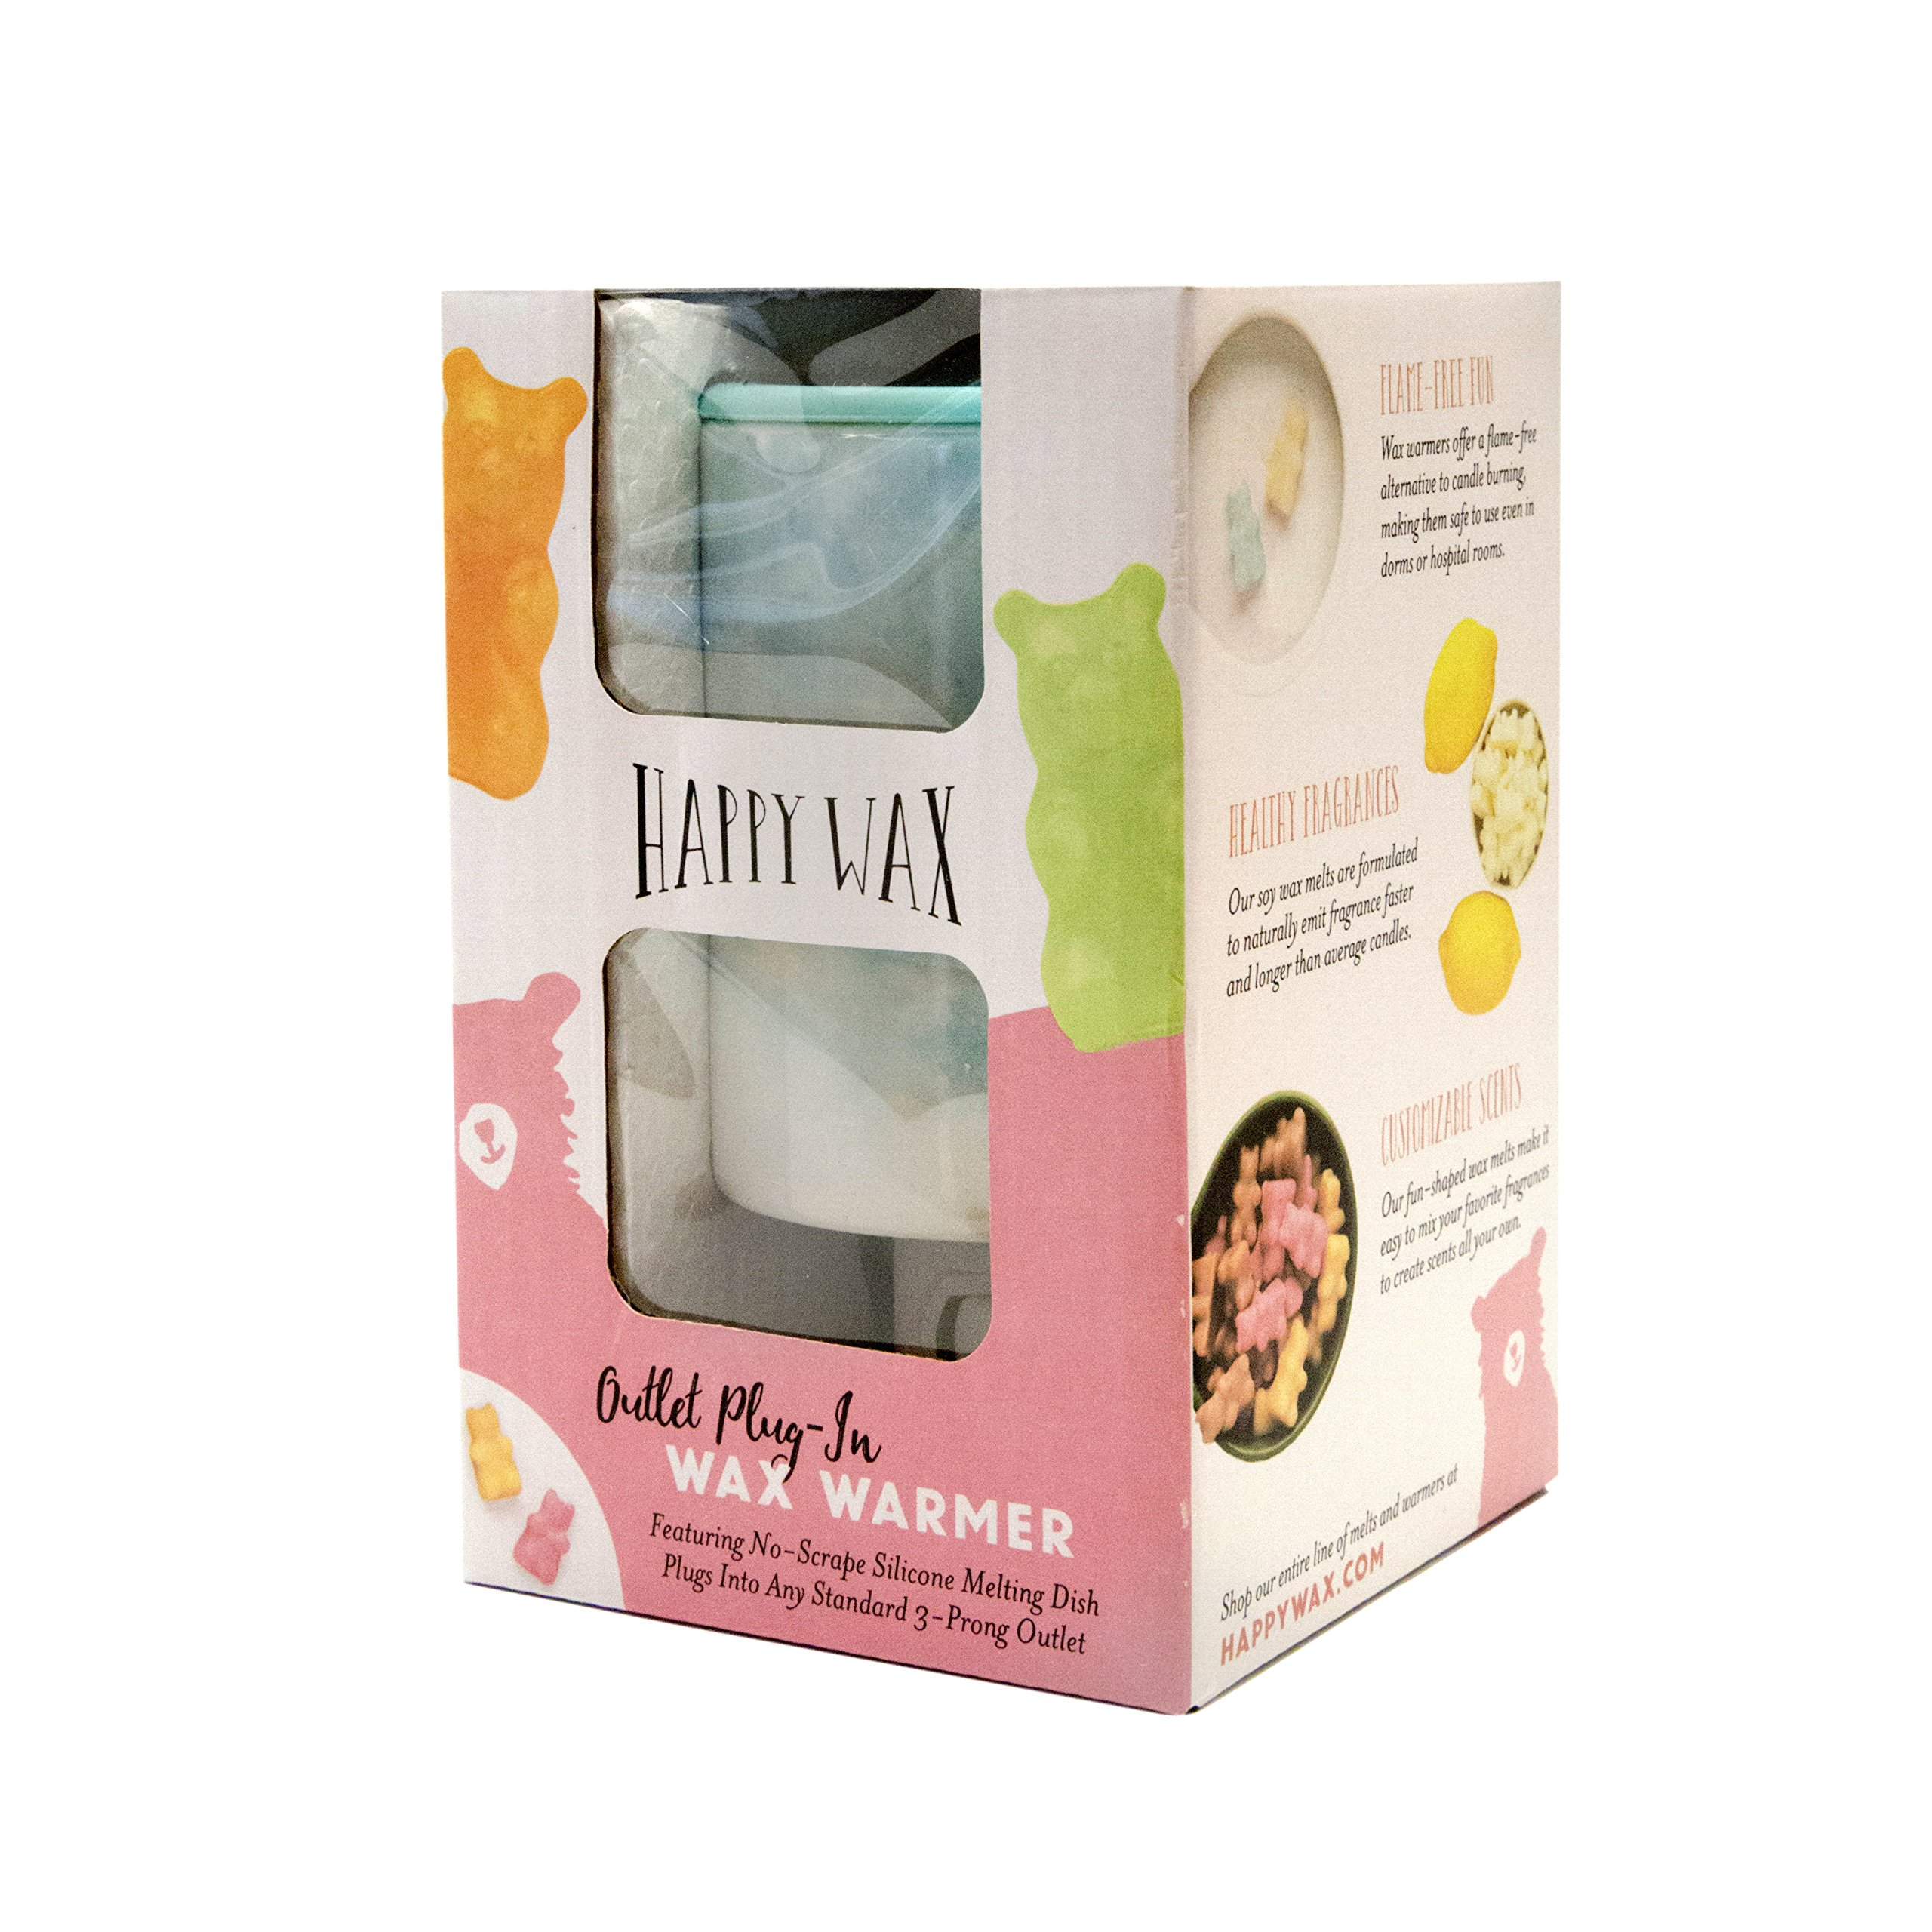 Details about Happy Wax Outlet Wax Melt Warmer for Wax Melts, Tarts Cubes -  Ceramic Wax